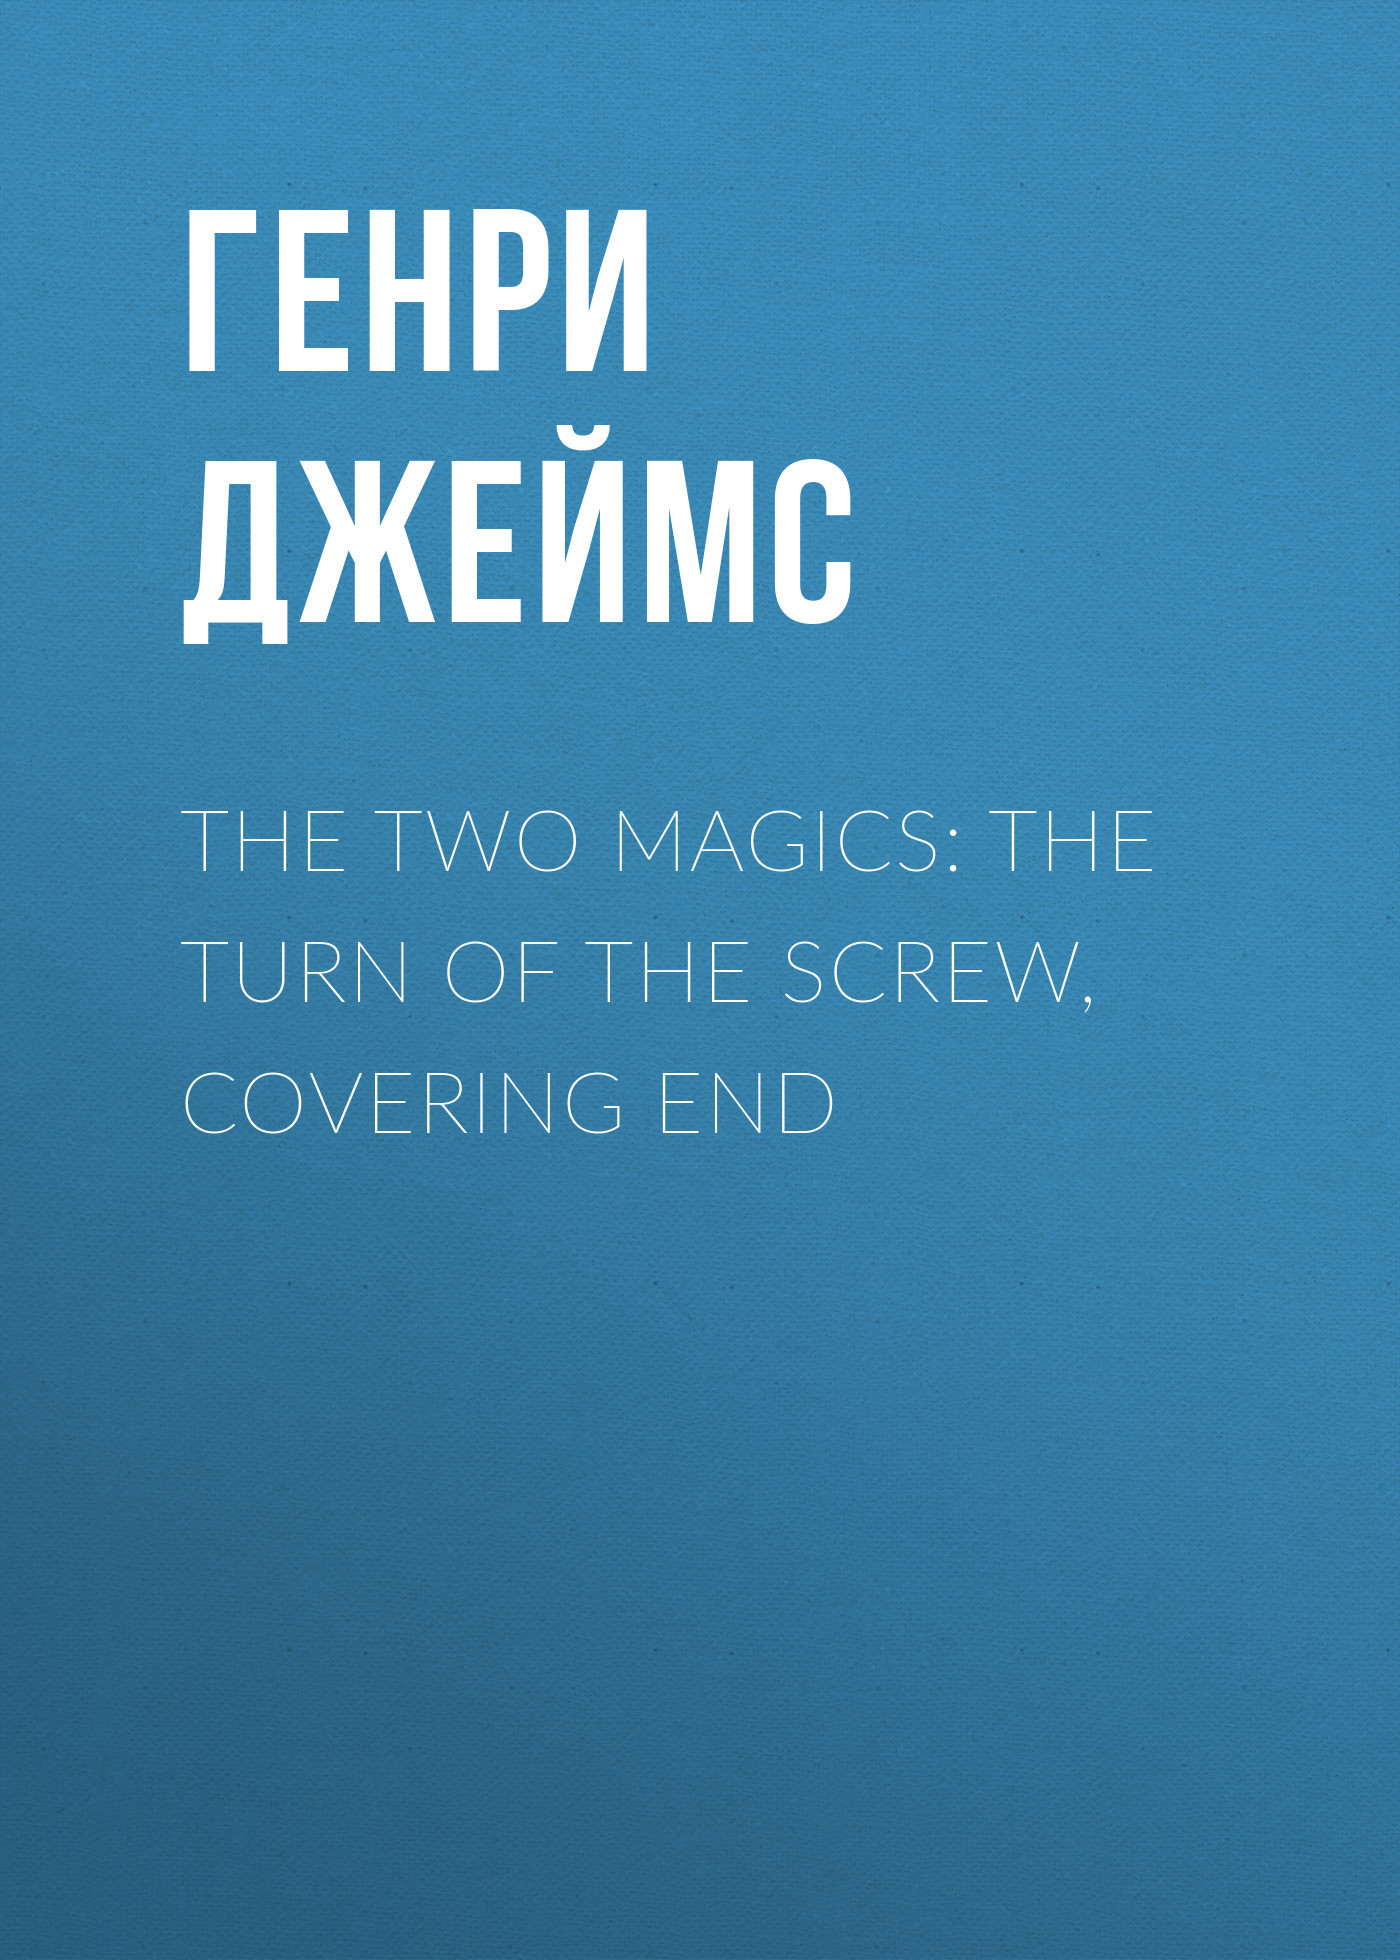 Генри Джеймс The Two Magics: The Turn of the Screw, Covering End anne mather lure of eagles page 2 page 10 page 8